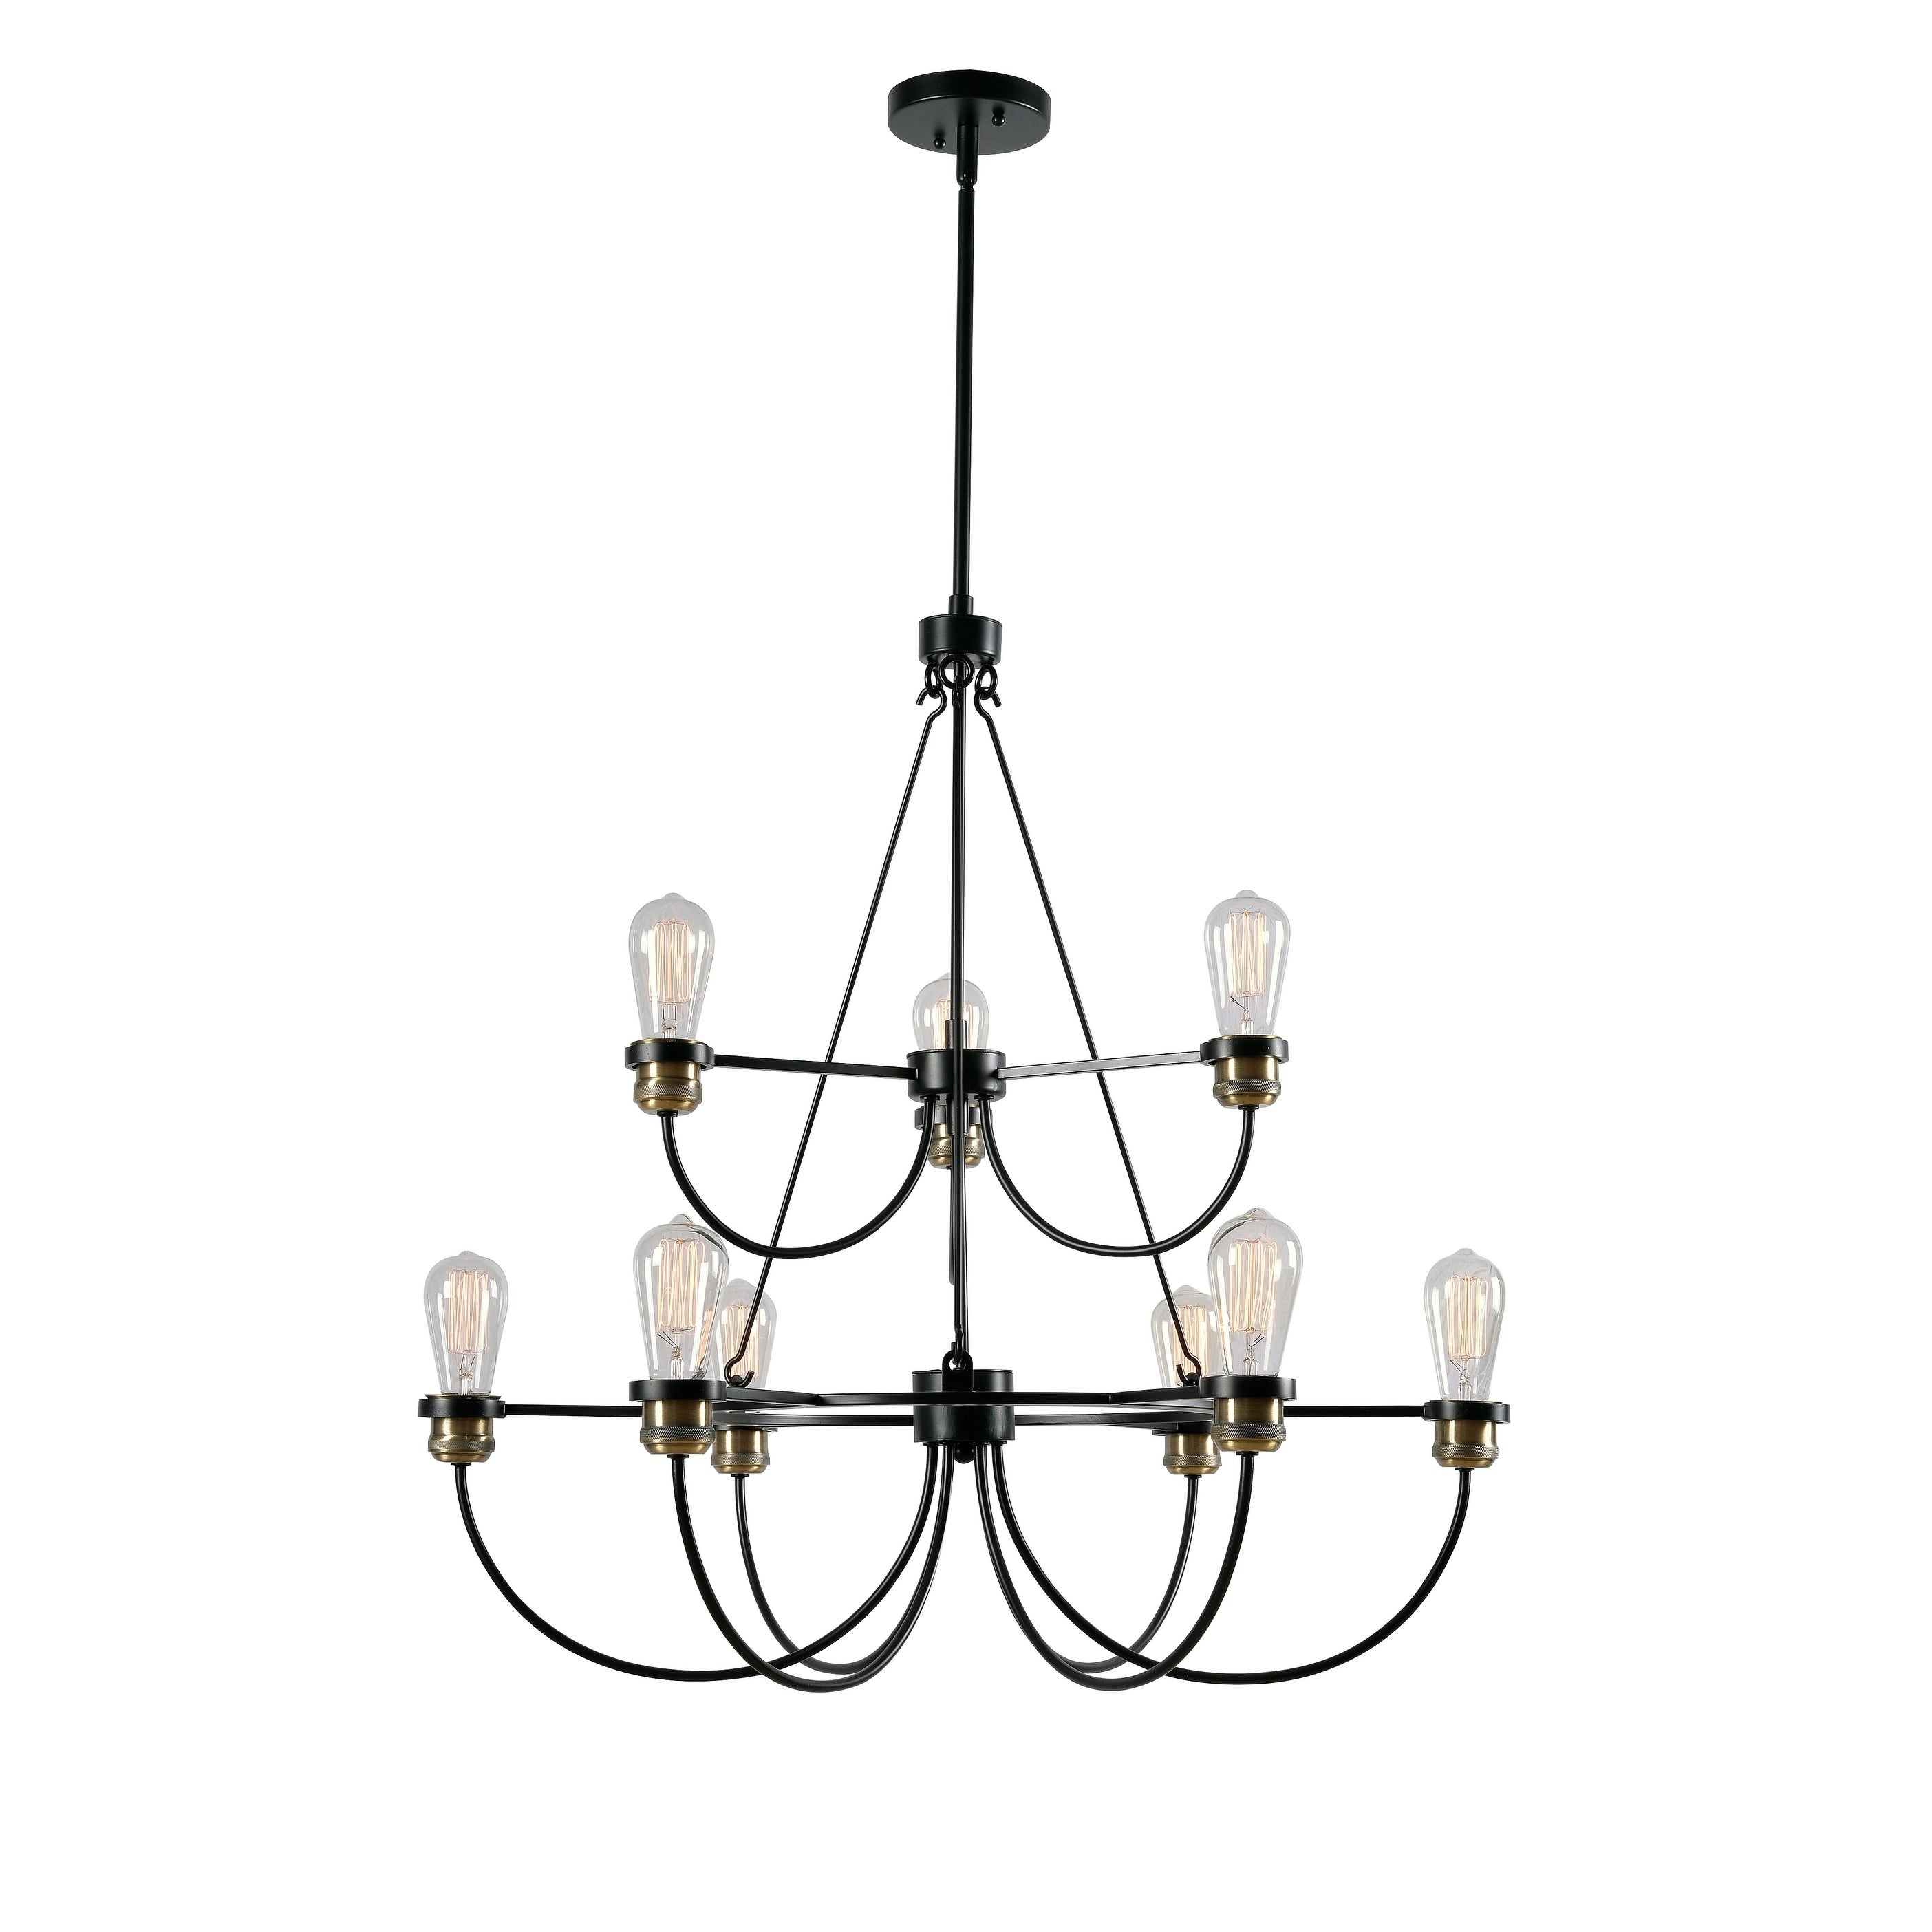 shop aiden black 9 light 2 tier chandelier on sale free shipping